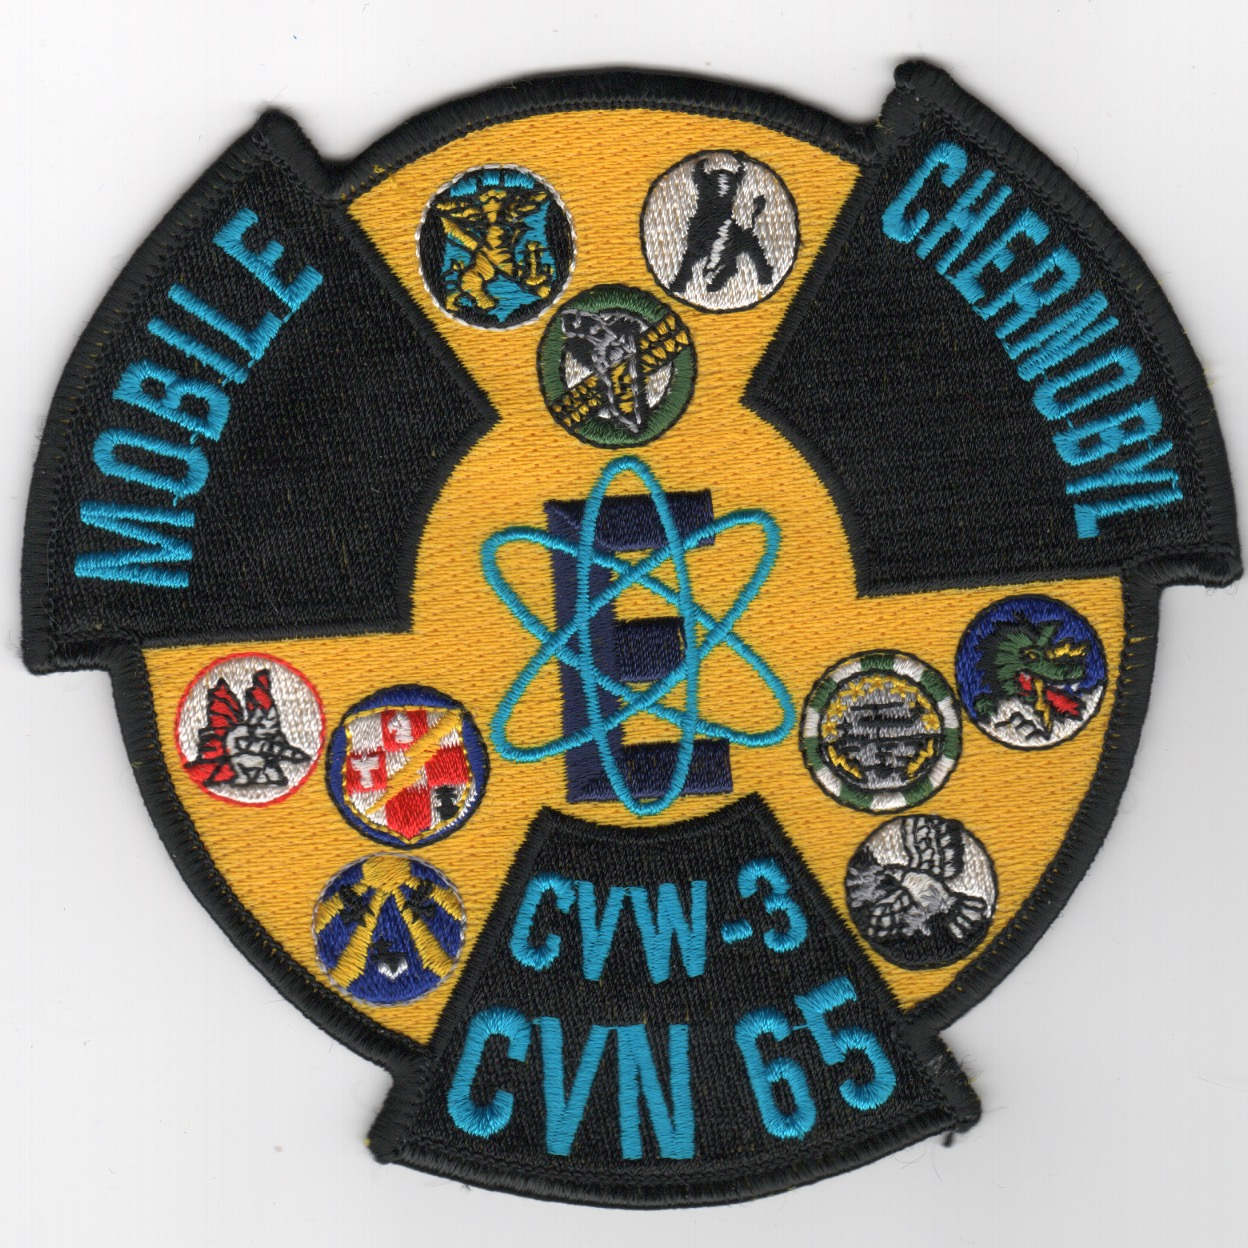 430) CVN-65 'MOBILE CHERNOBYL' Cruise Patch